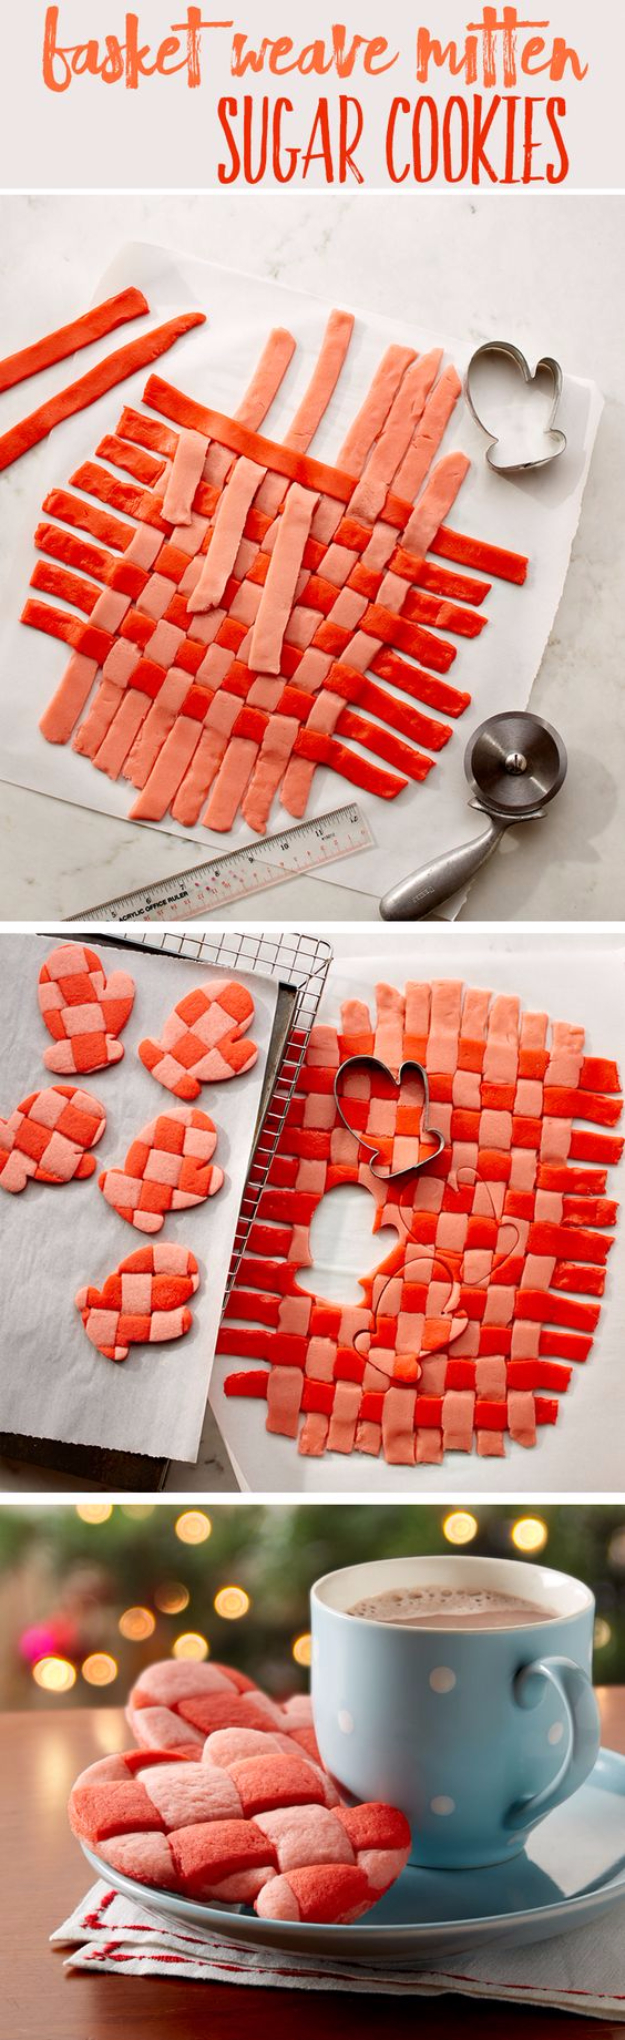 Best Recipes for Christmas Cookies- Basket Weave Mitten Sugar Cookies - Easy Decorated Holiday Cookies - Candy Cookie Recipes Ideas for Kids - Traditional Favorites and Gluten Free and Healthy Versions - Quick No Bake Cookies and Last Minute Desserts for the Holidays